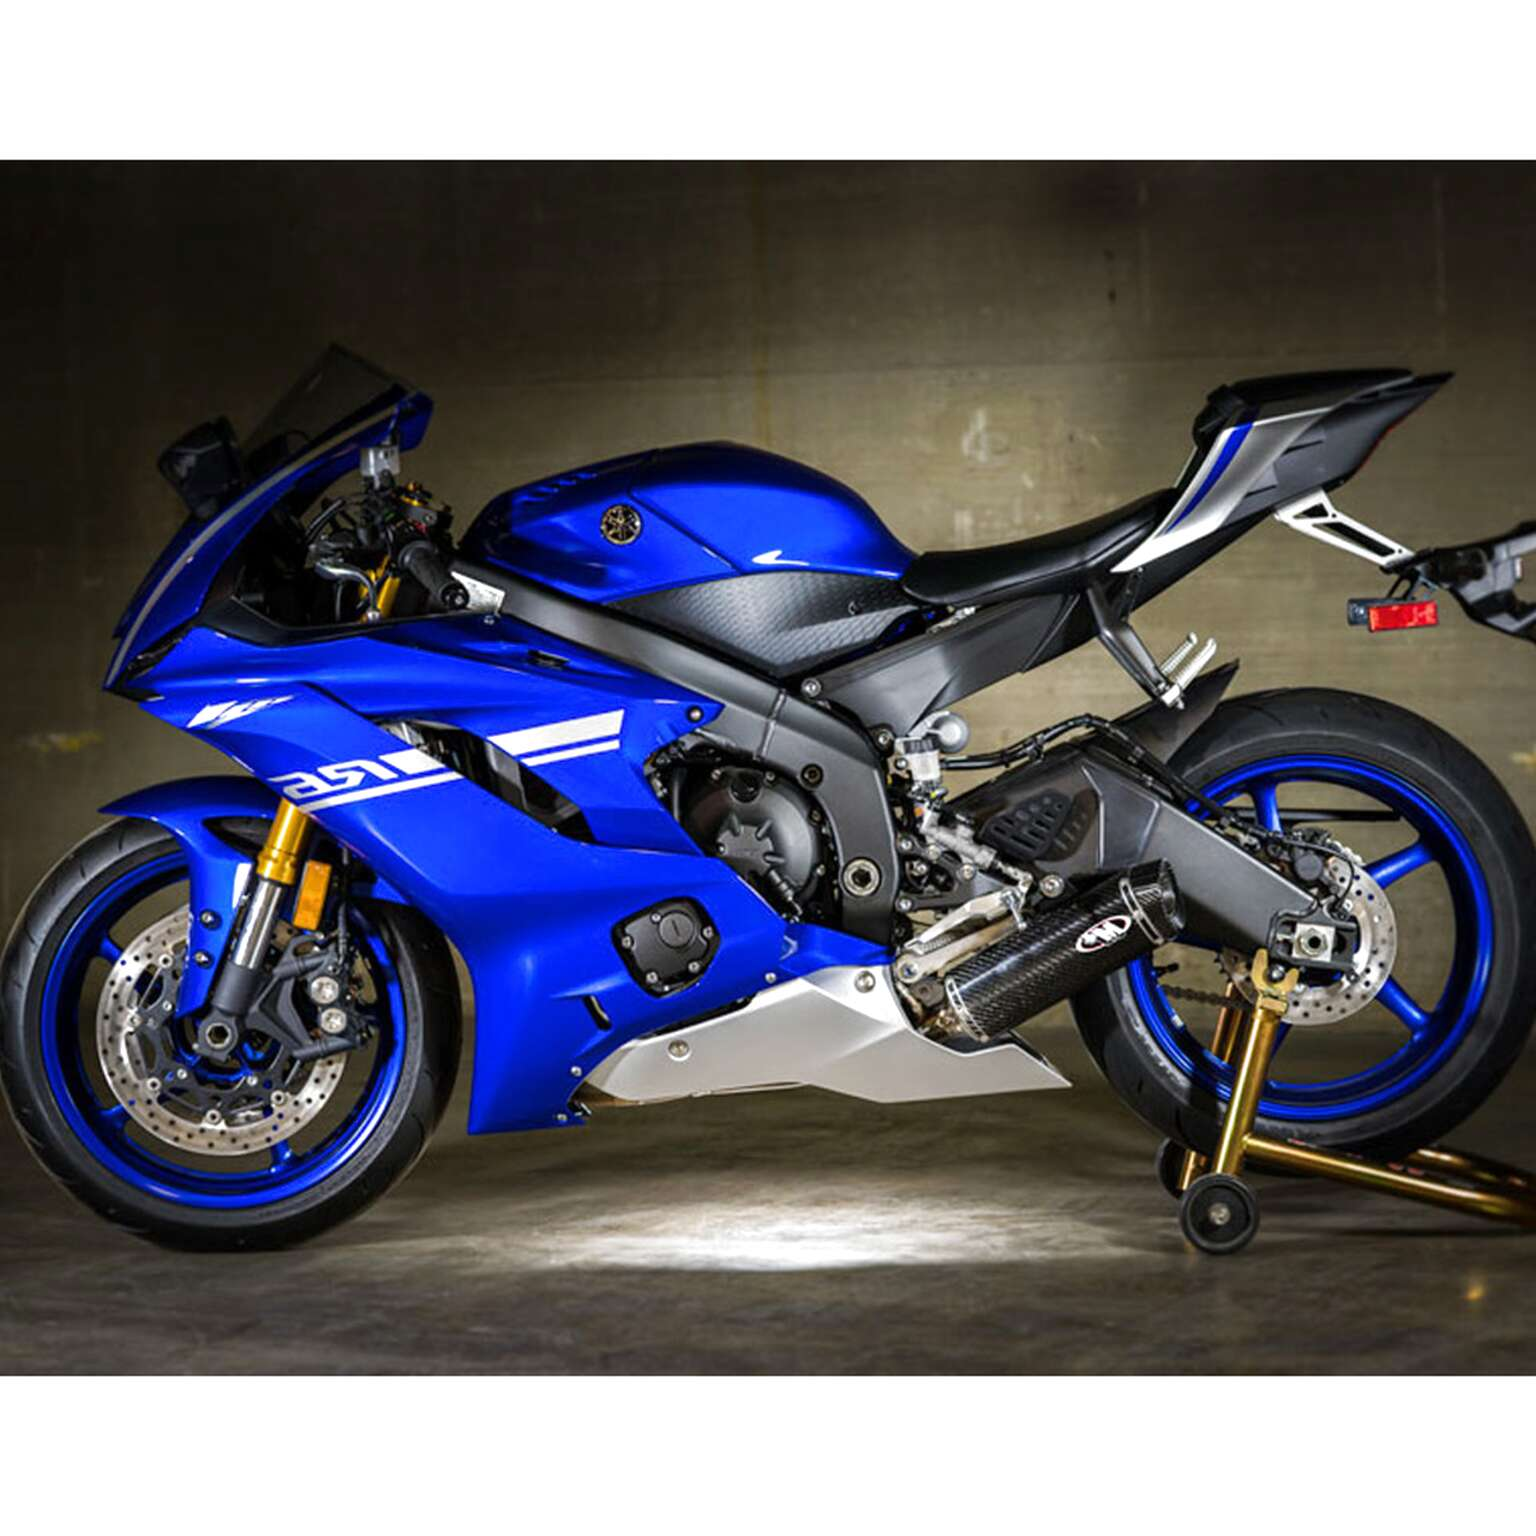 r6 full exhaust for sale